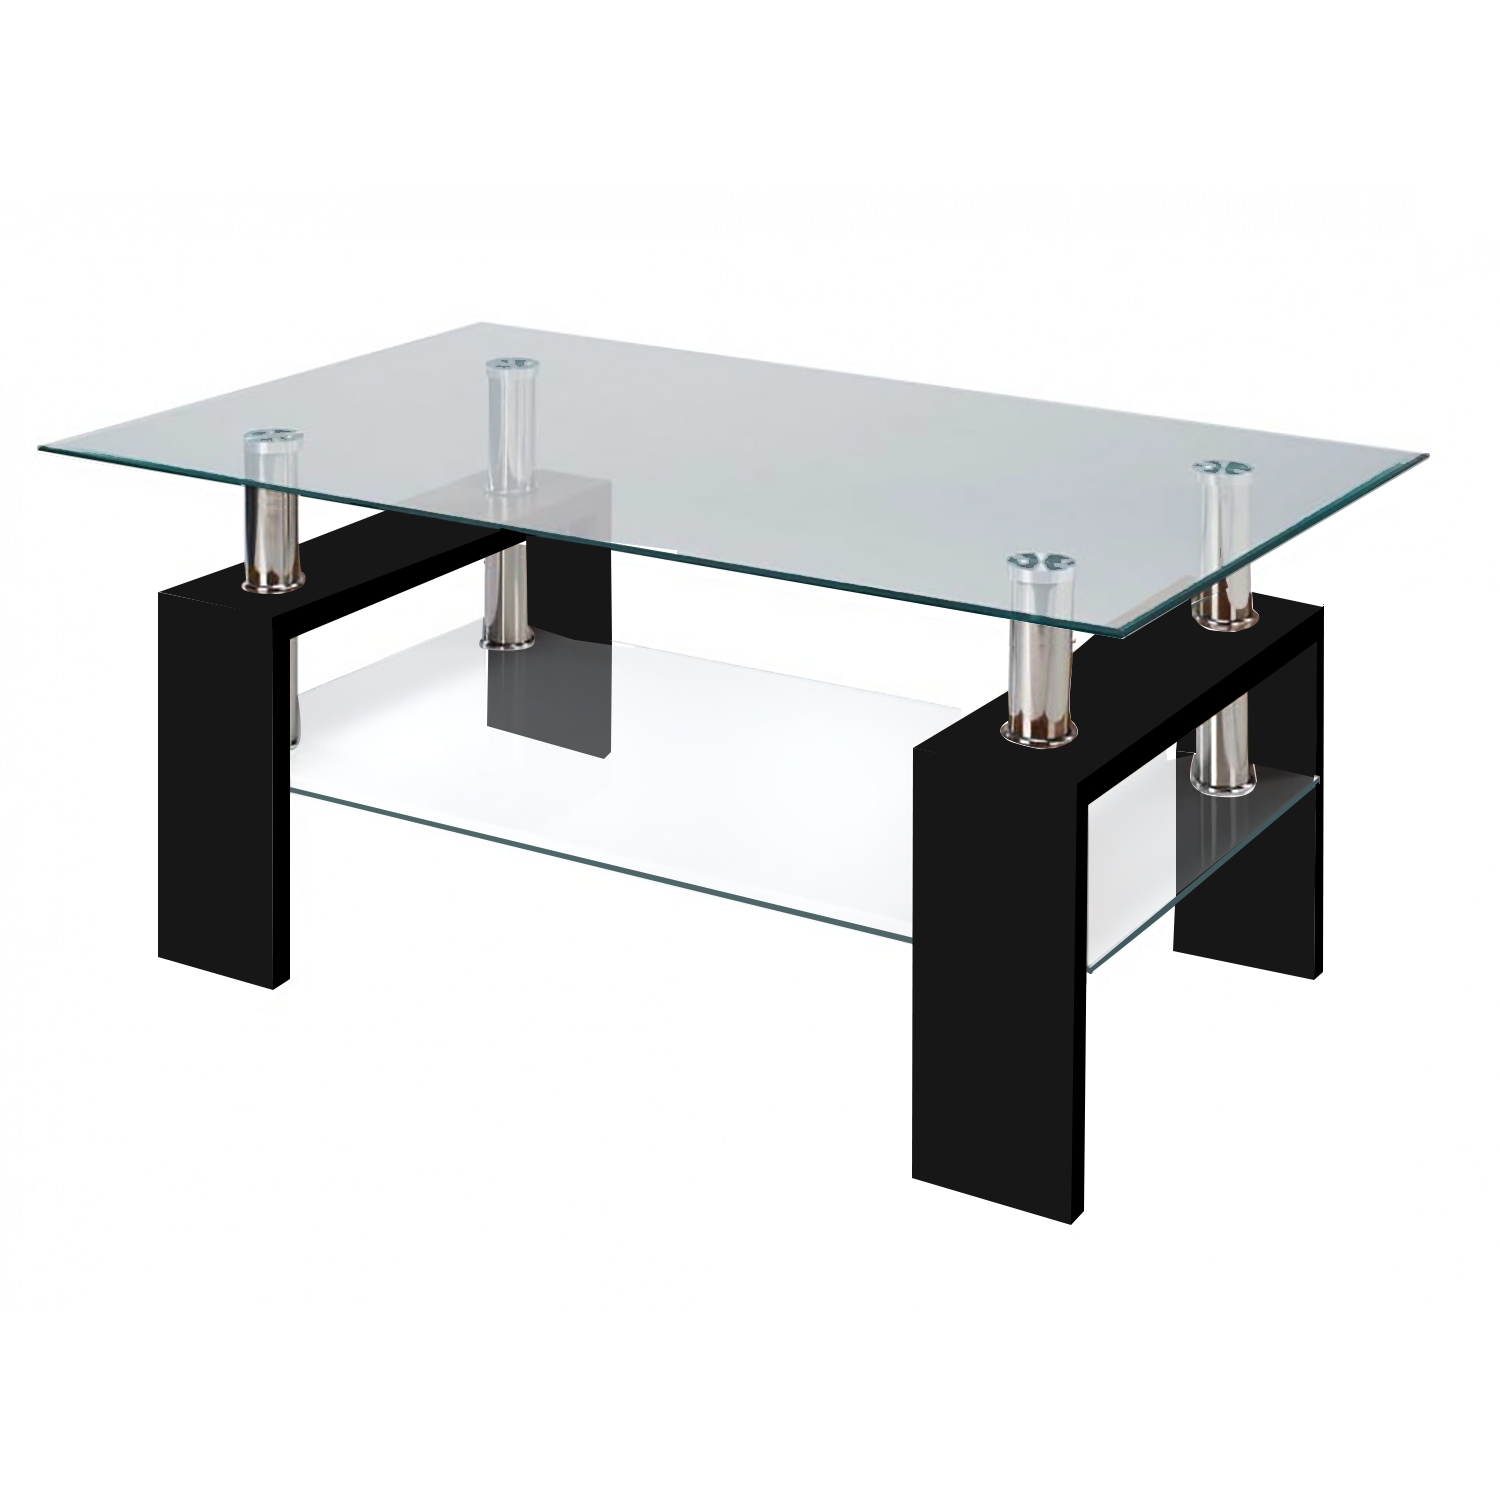 Modern Glass Black Coffee Table With Shelf Contemporary throughout Contemporary Glass Coffee Tables (Image 24 of 30)